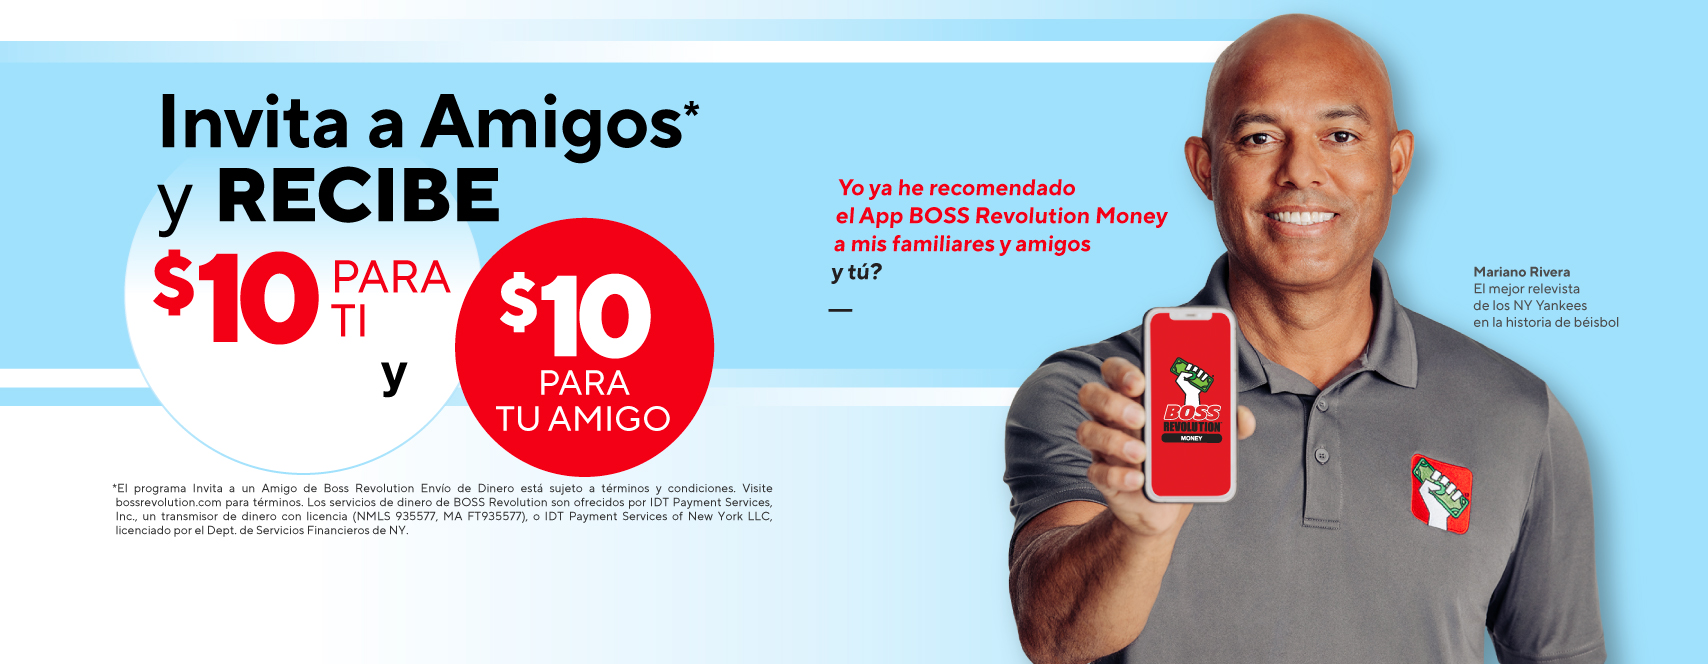 Refer a friend with BOSS Revolution